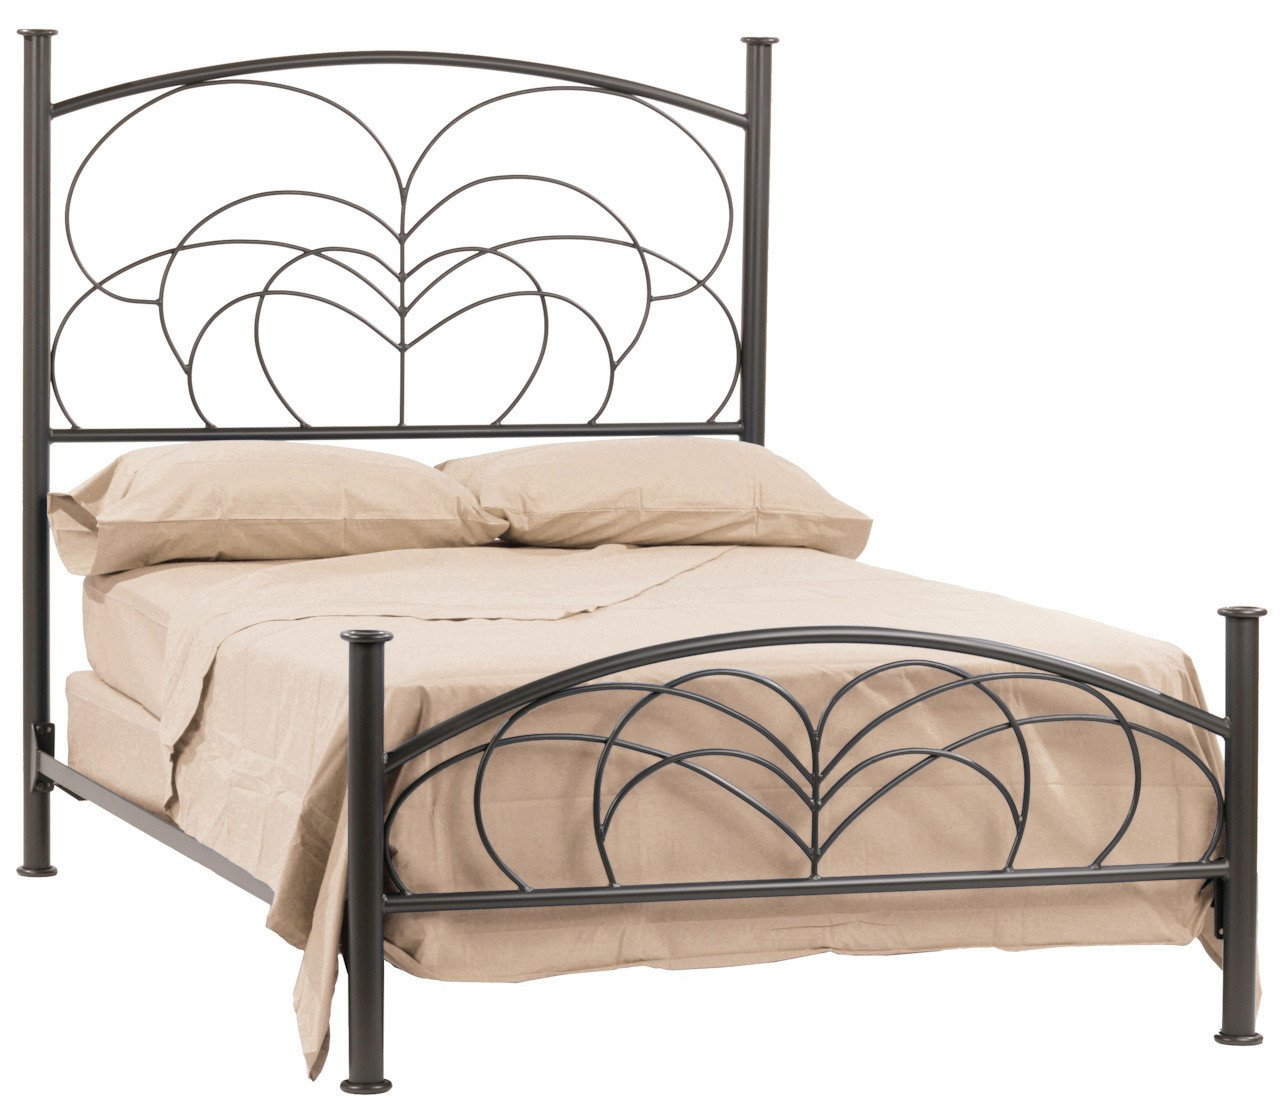 Full Bed Willow 2978 Product Photo